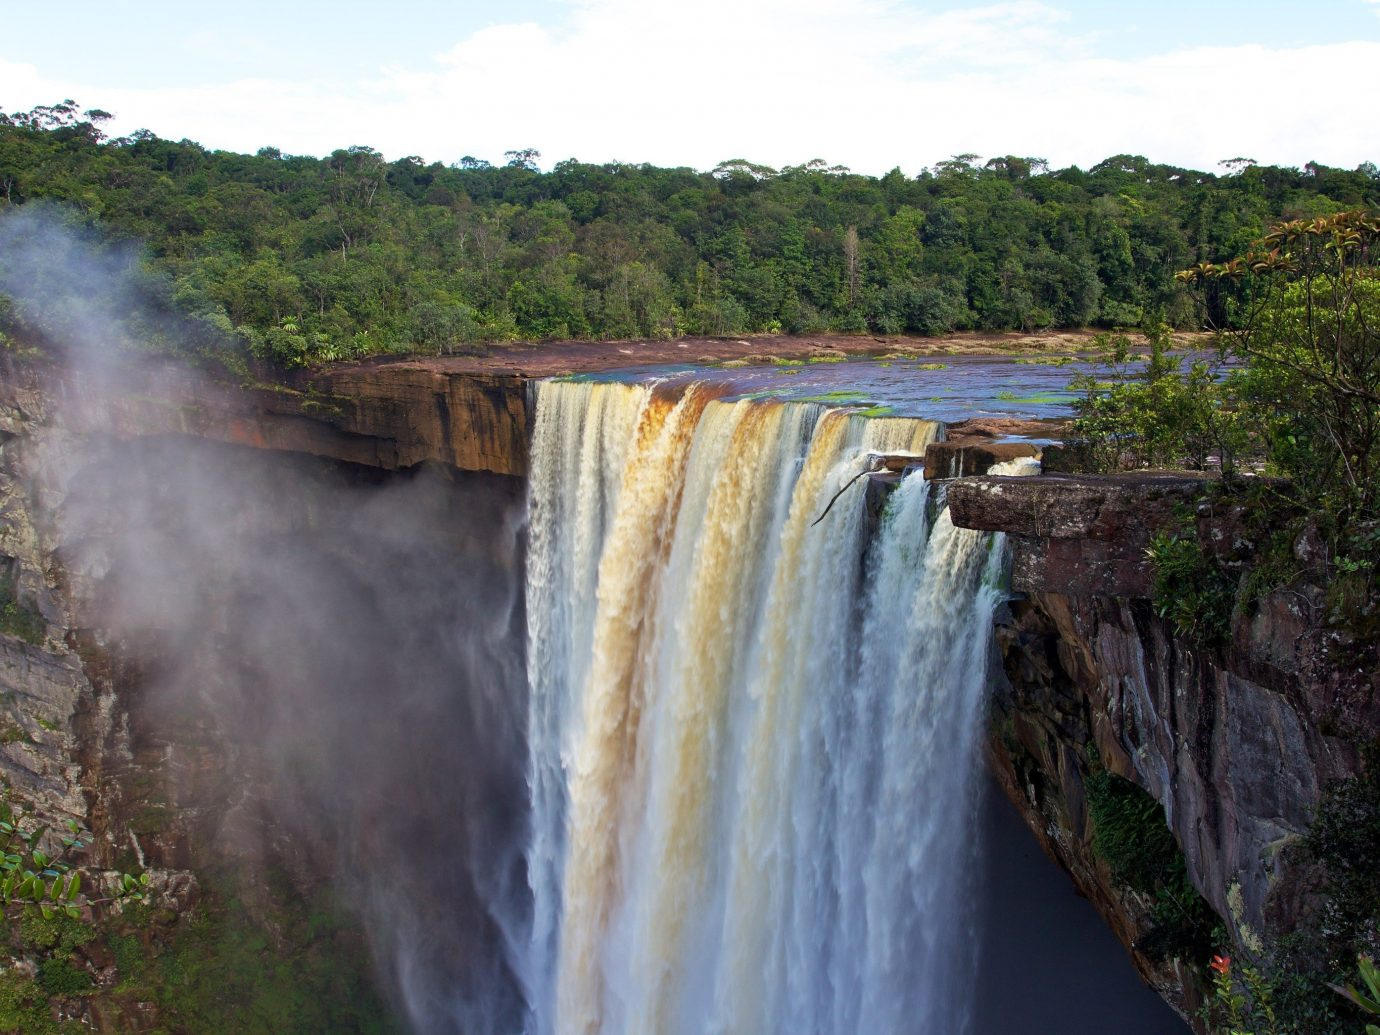 Health + Wellness Trip Ideas train outdoor tree Nature sky Waterfall track body of water water water feature watercourse River wasserfall reservoir cliff terrain Forest traveling wood